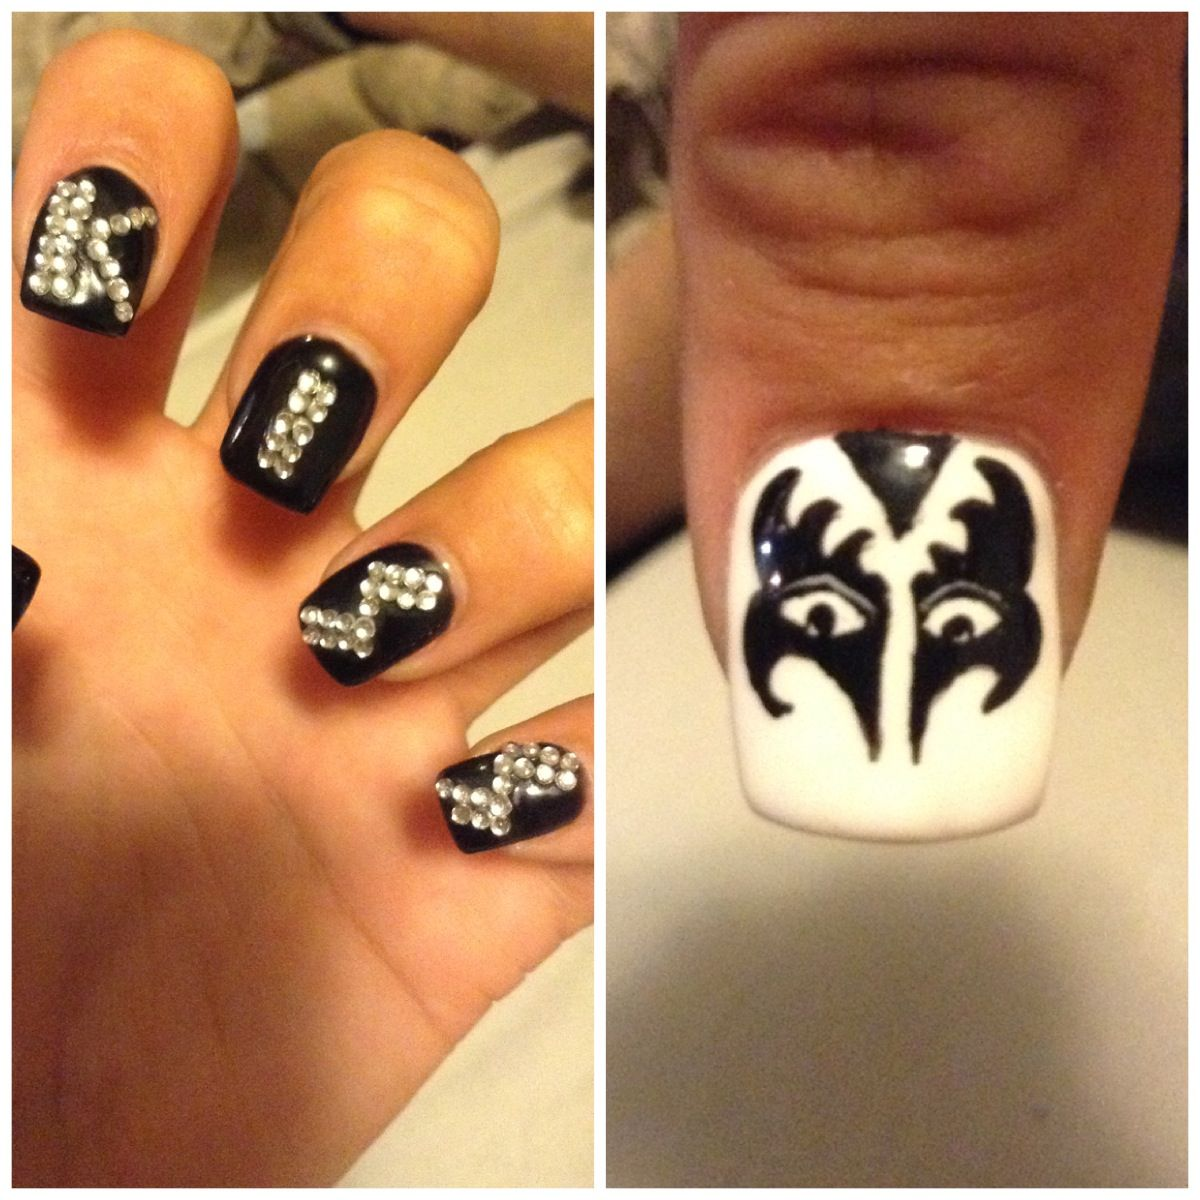 KISS nail art !!! Kiss army !!! | Nails | Pinterest | Kiss nails and ...